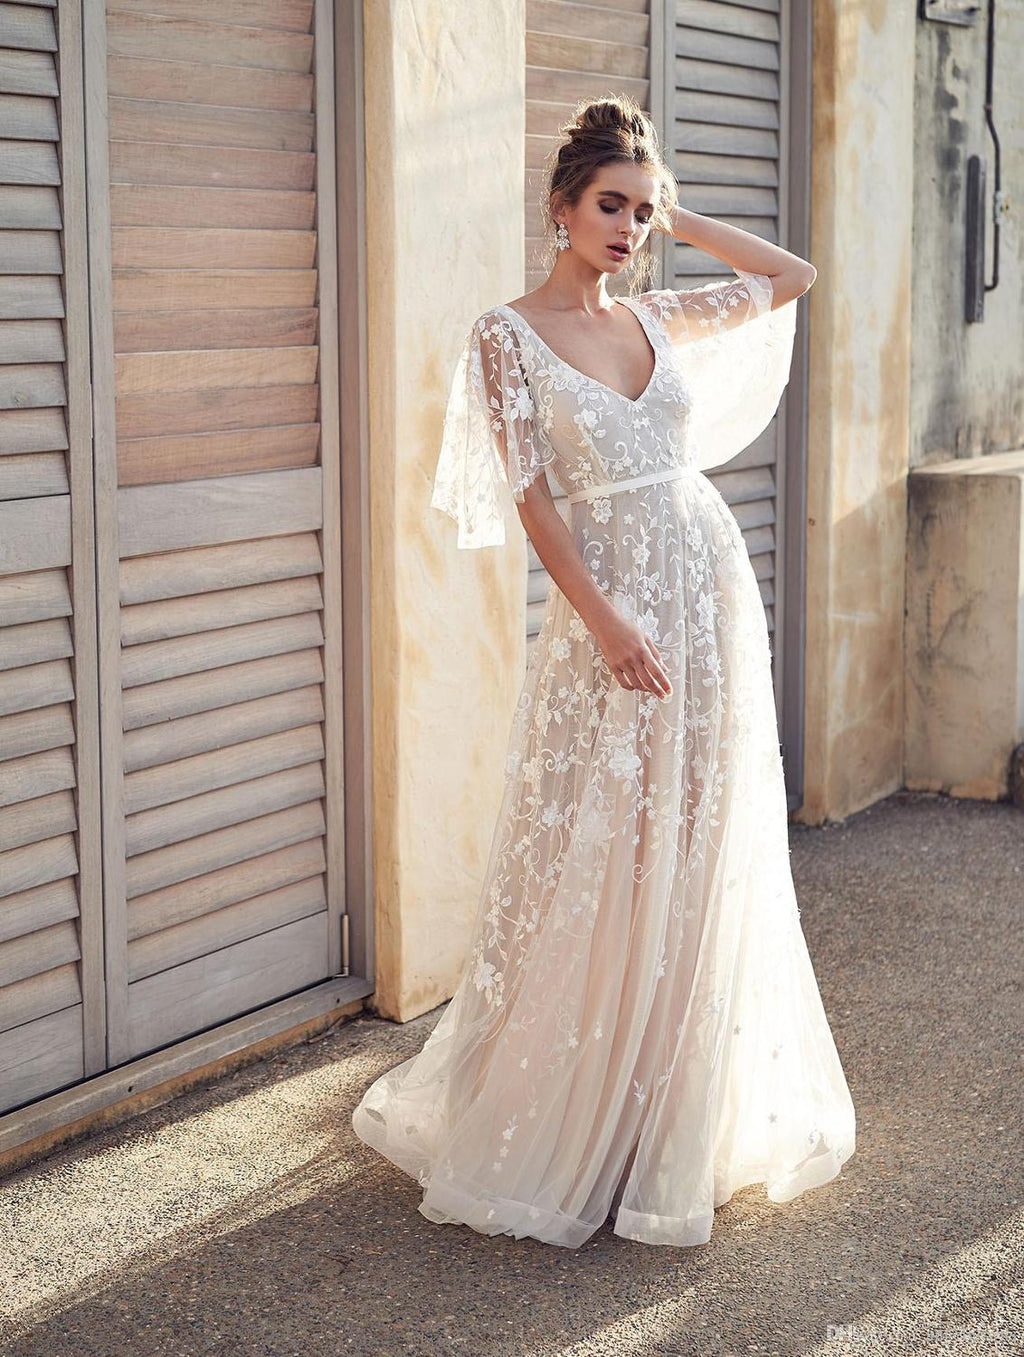 Beach Vestido De Noiva 2019 Muslim Wedding Dresses A-line V-neck Tulle Appliques Lace Backless Boho Wedding Gown Bridal Dress - Smoulder Products